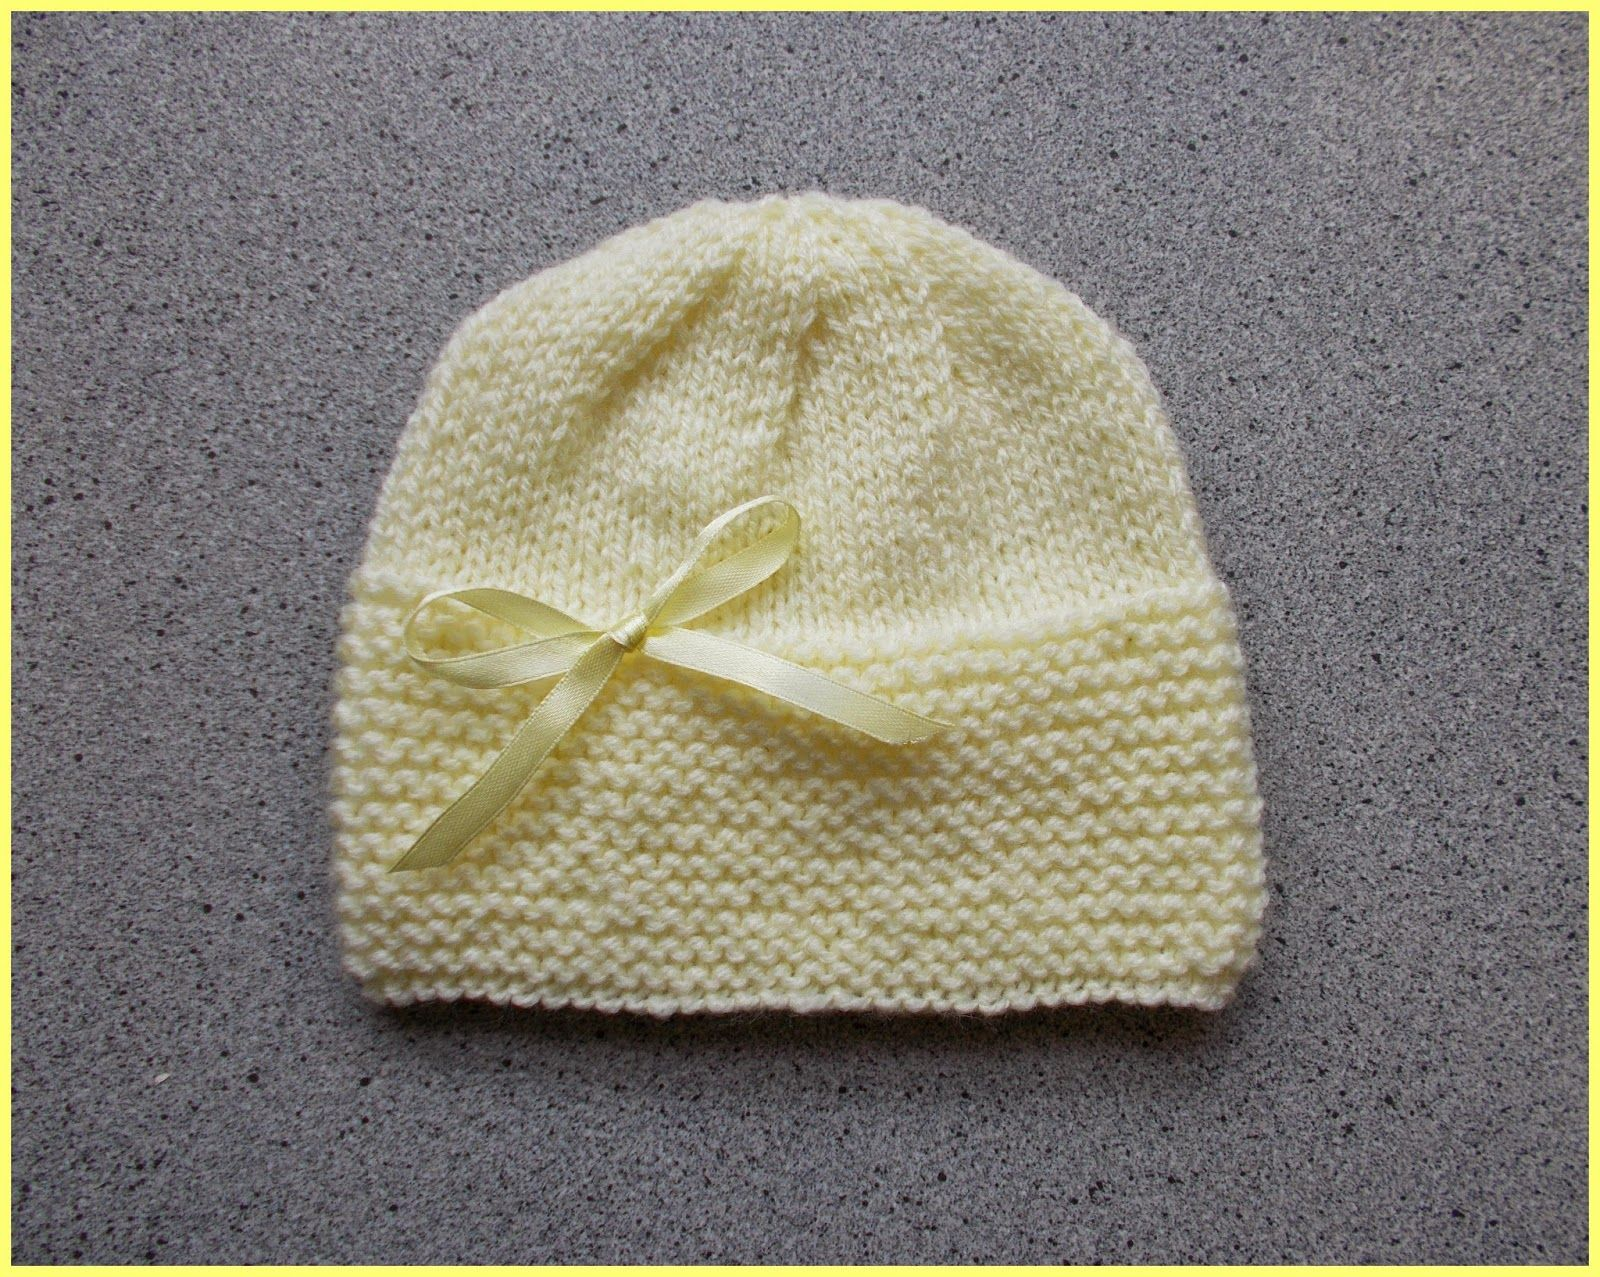 marianna\'s lazy daisy days: Babbity Baby Hat | Hats | Pinterest ...